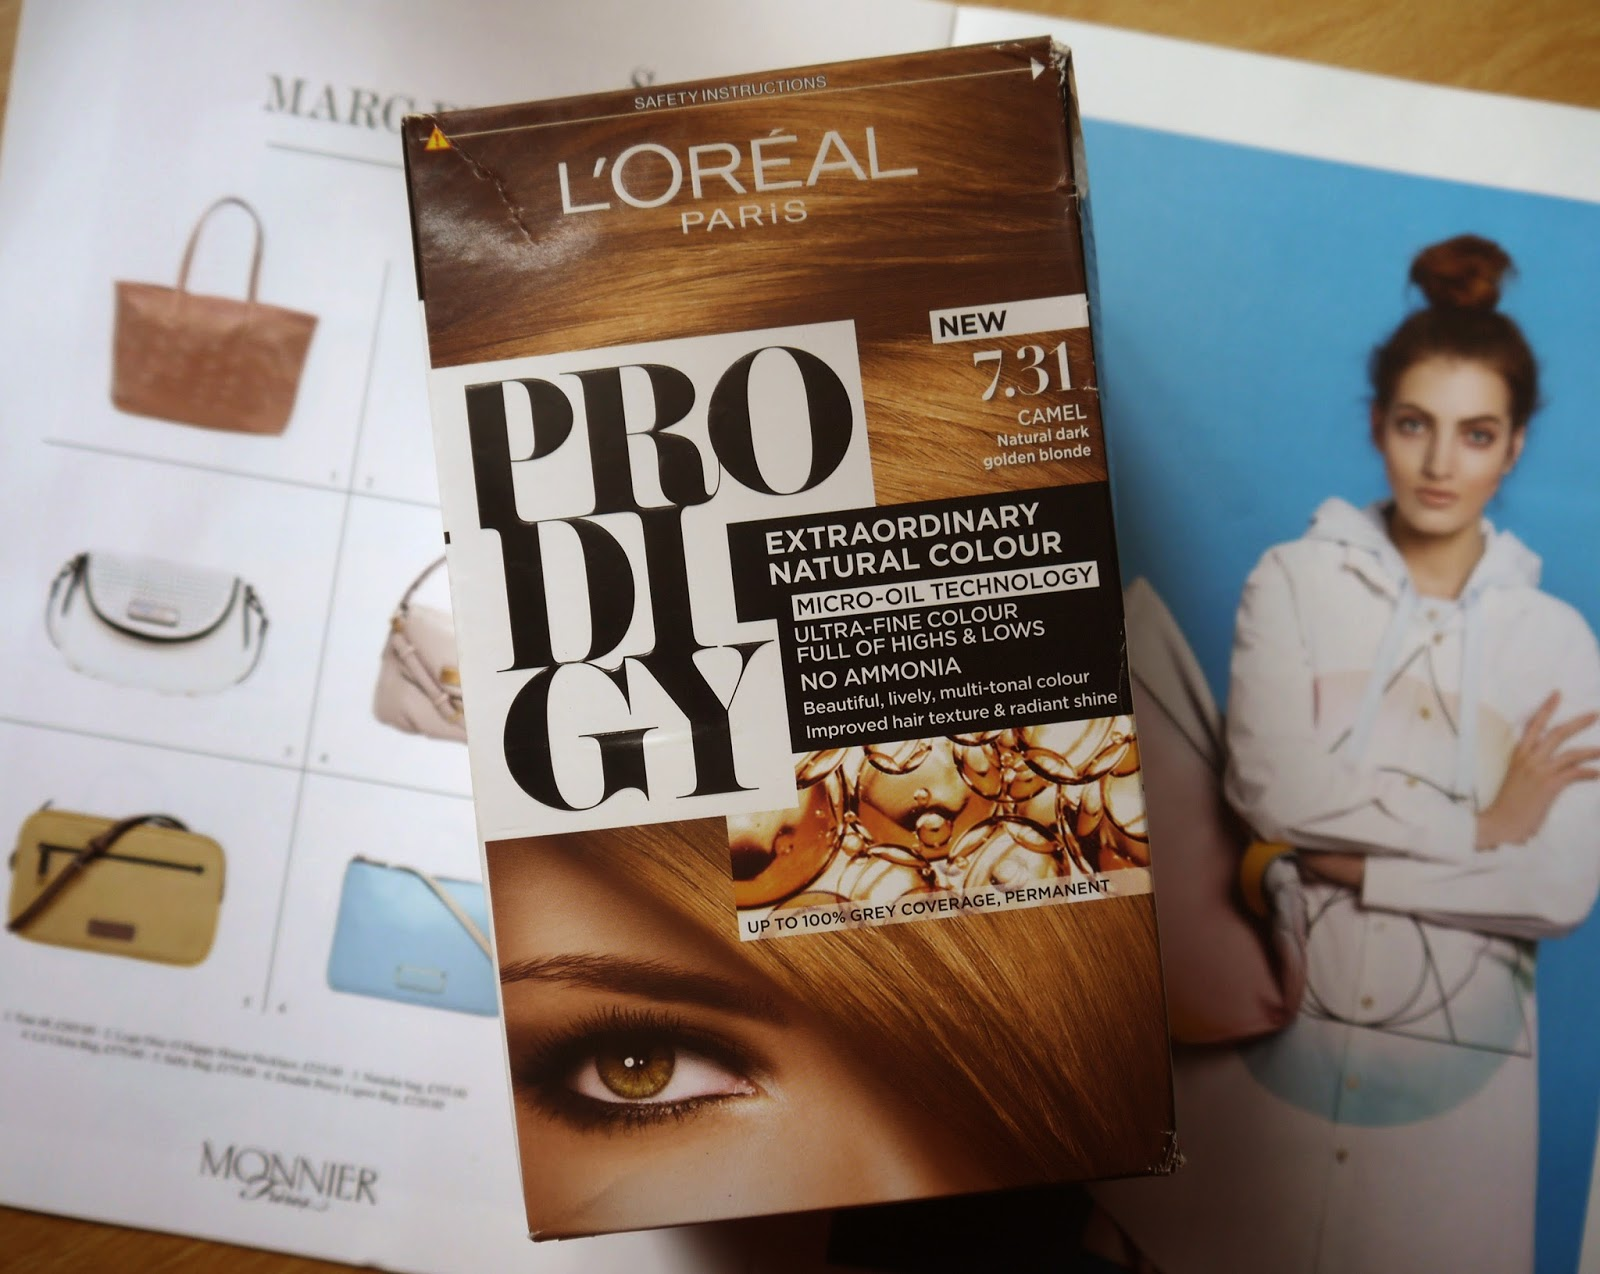 L'oreal Prodigy Hair Dye In 'Camel' // Light brown hair dye